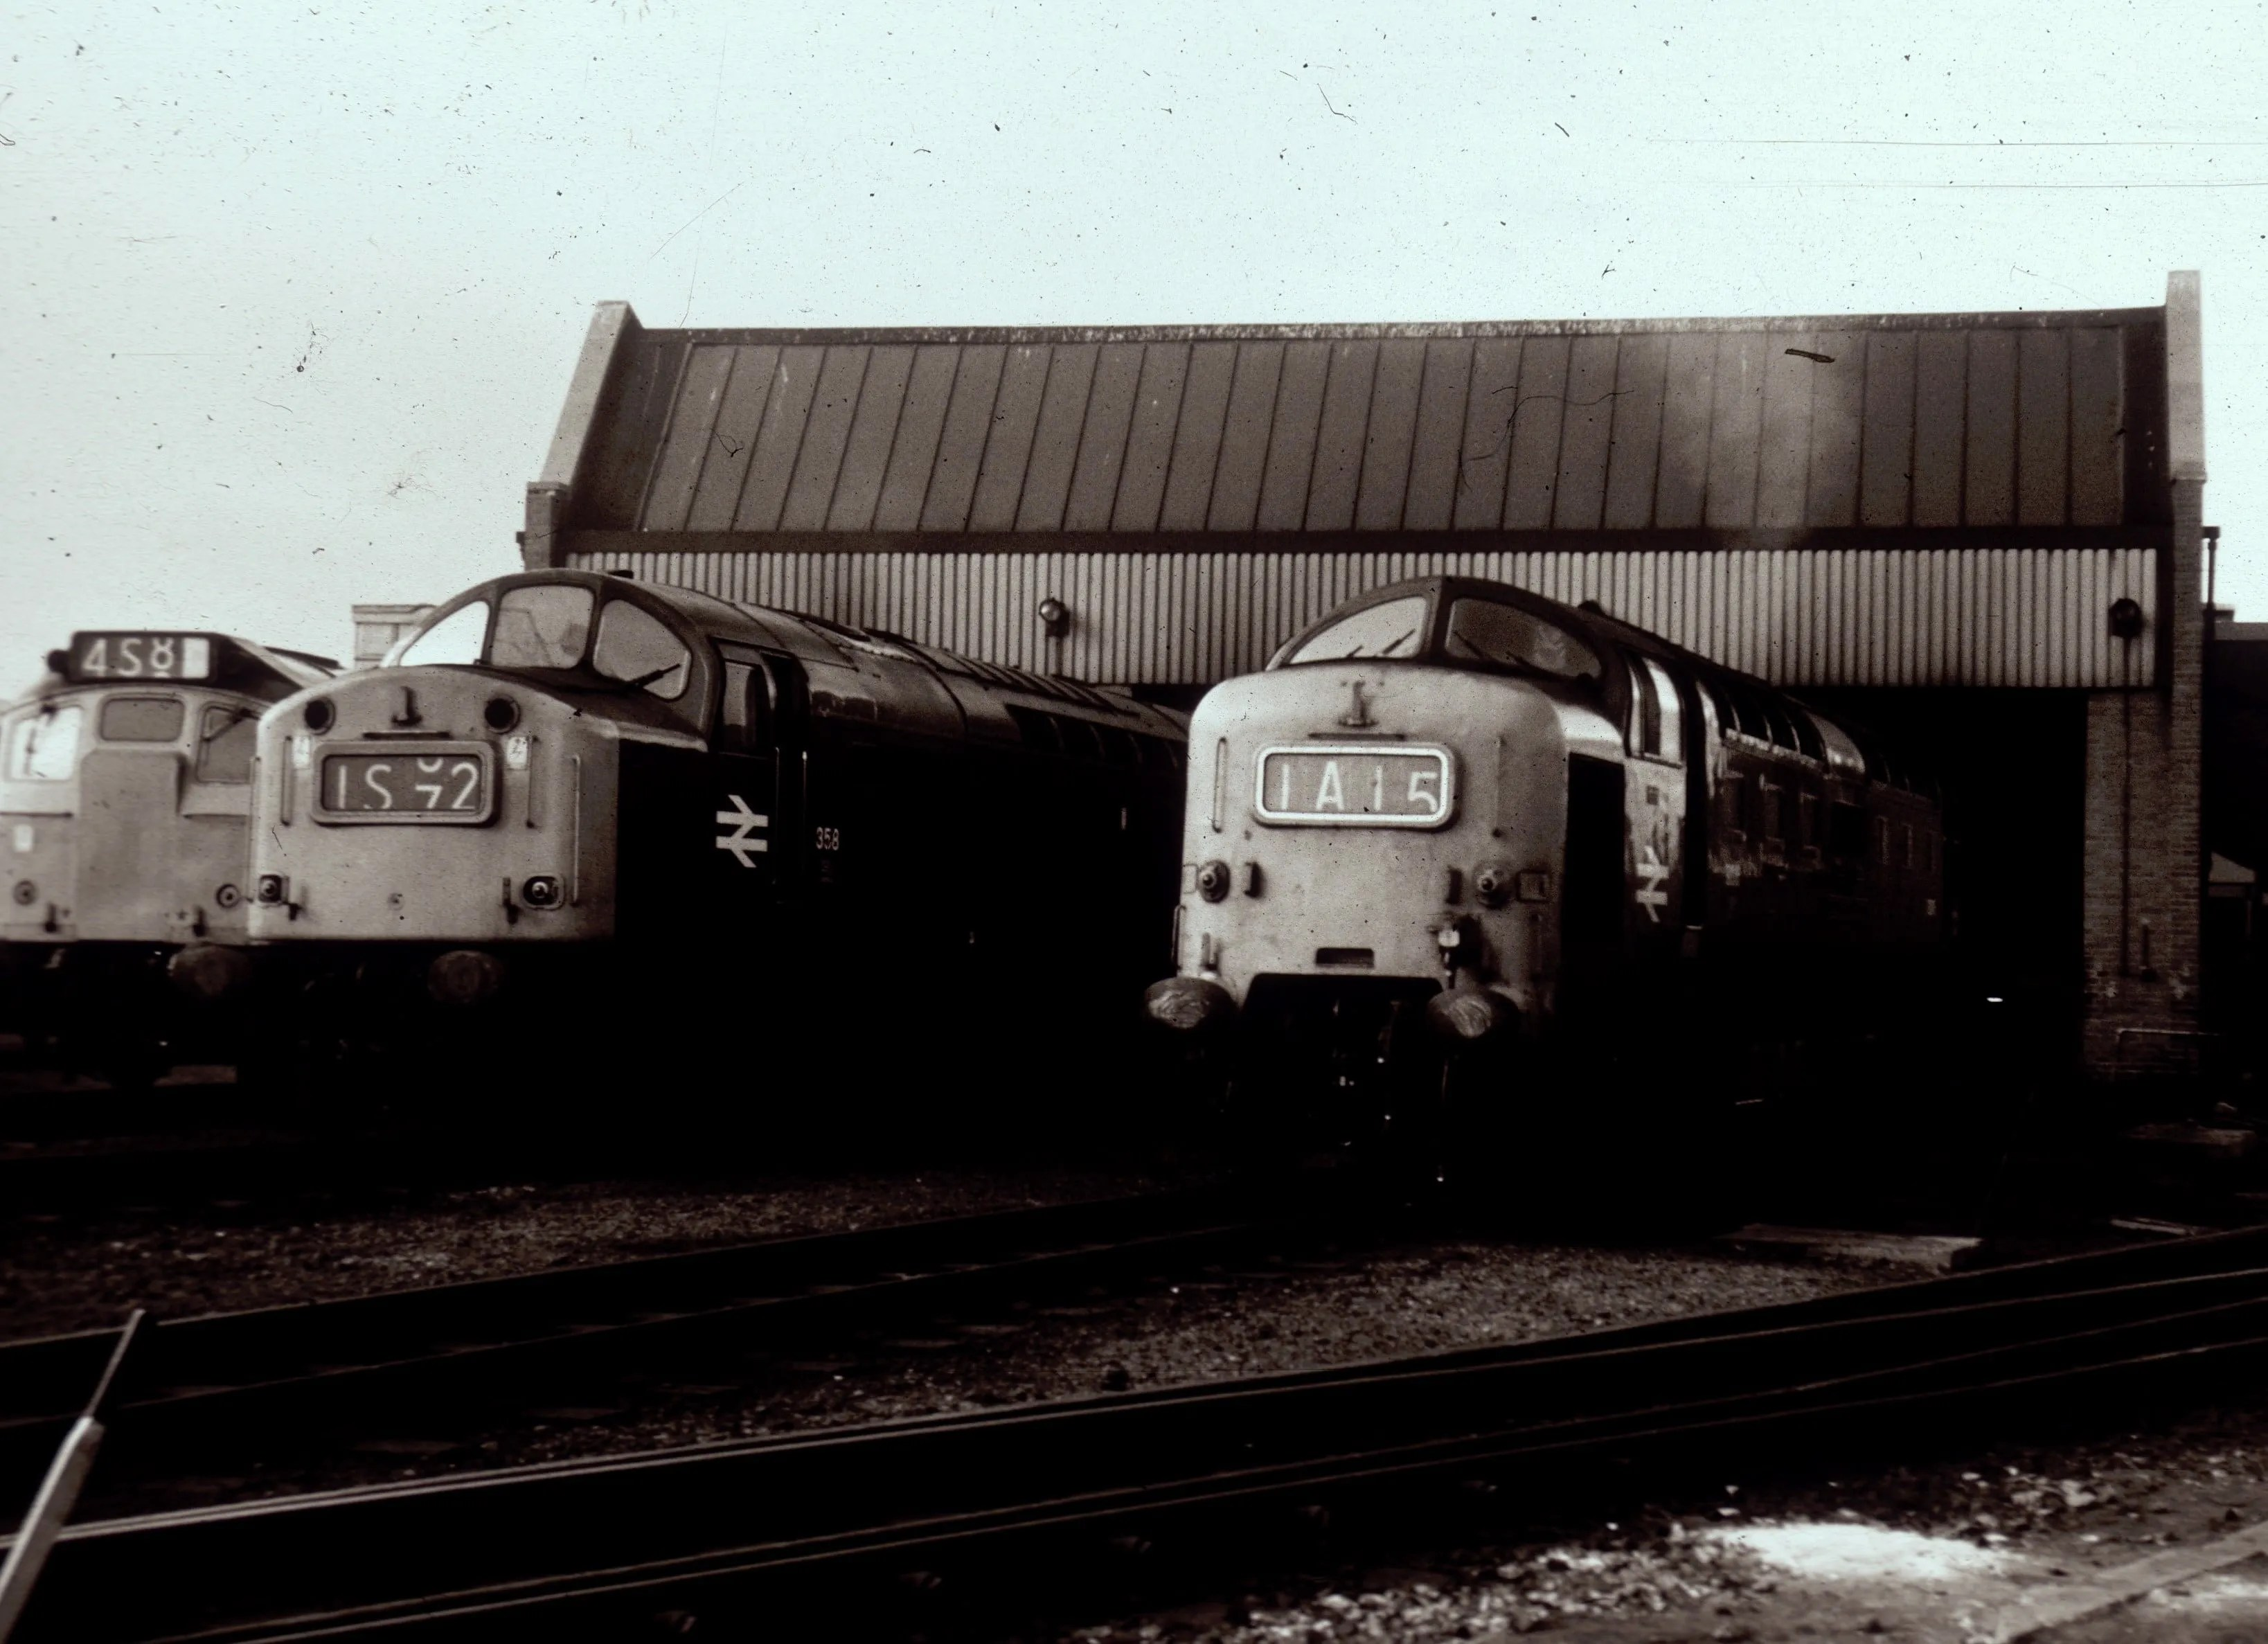 Deltic in company of Class 40 and 25 locomotives at Haymarket Depot